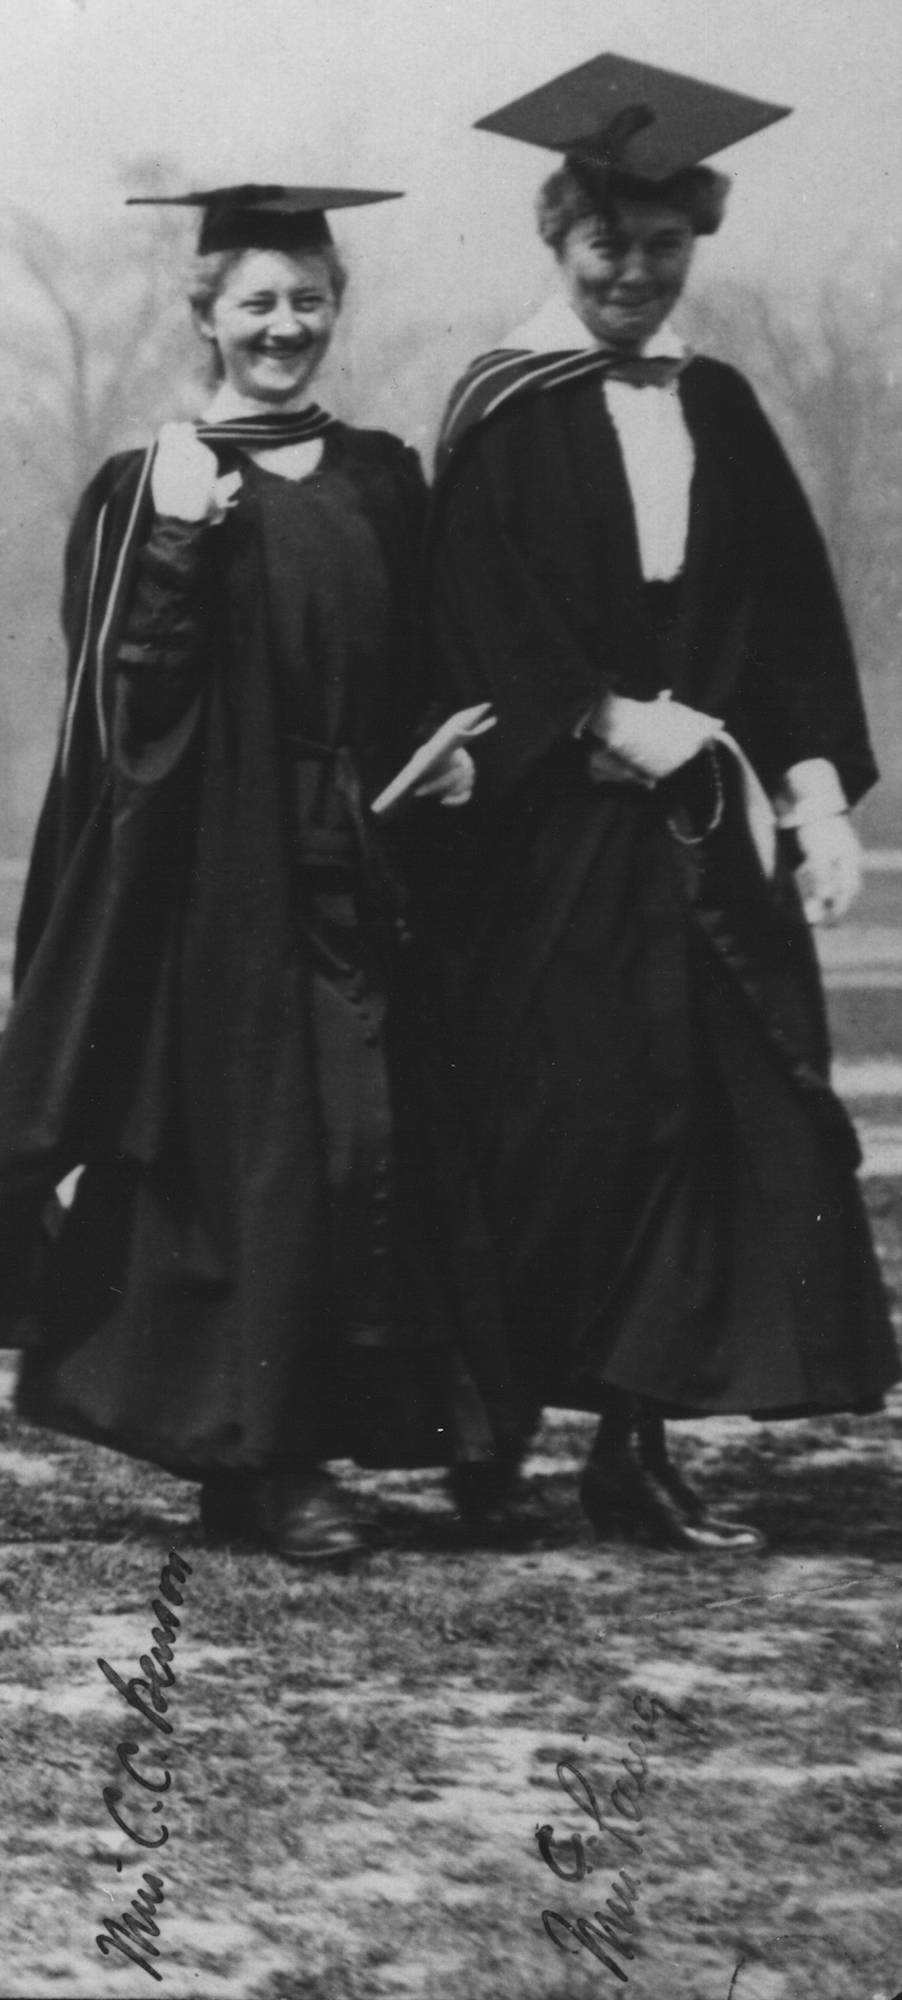 two women in academic robes and mortarbards, walking and smiling